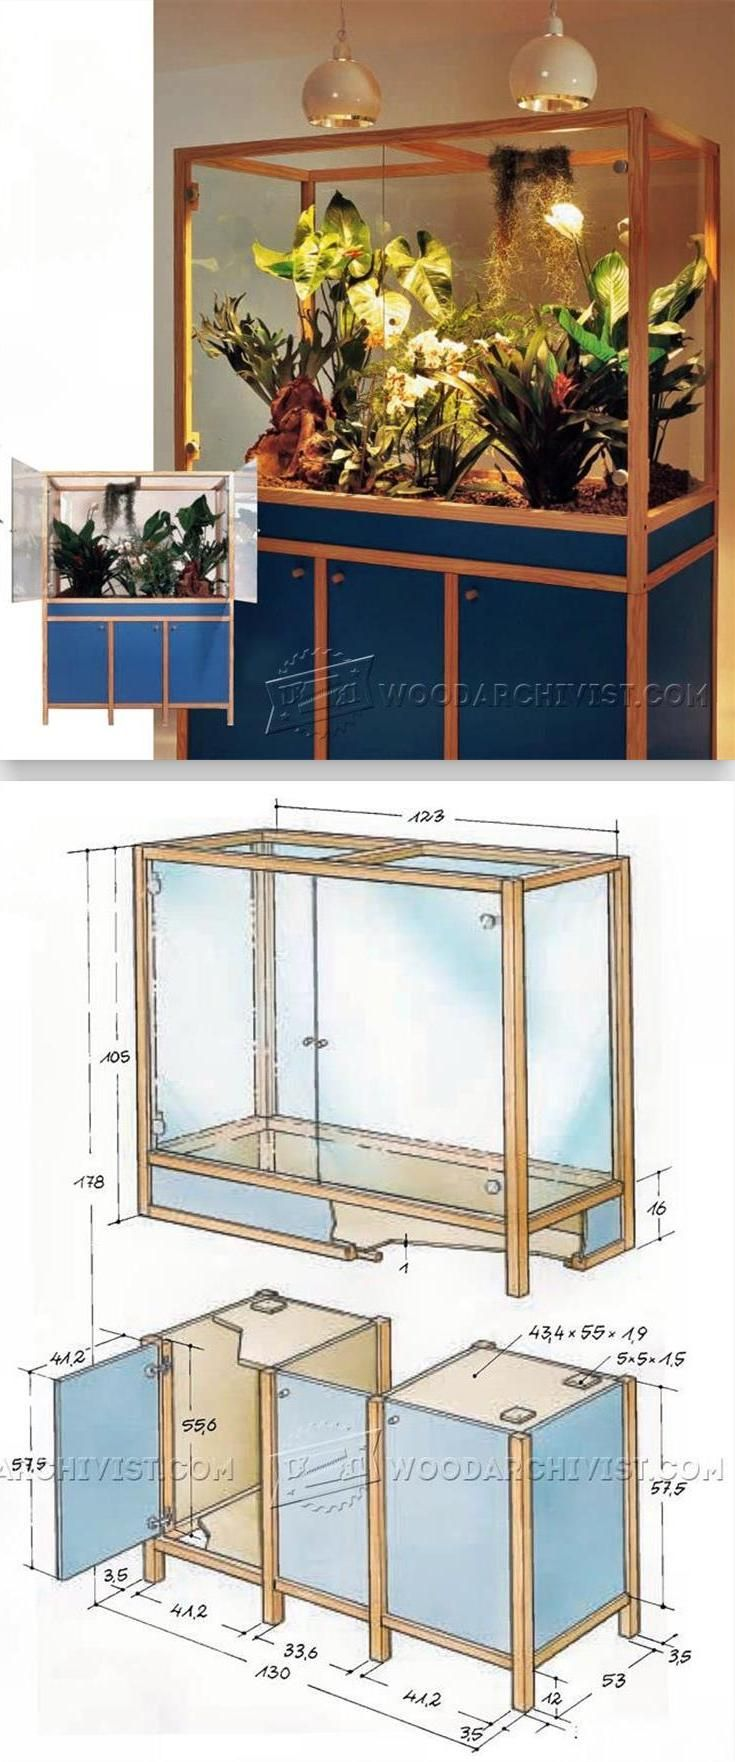 Diy reptile terrarium woodworking plans and projects